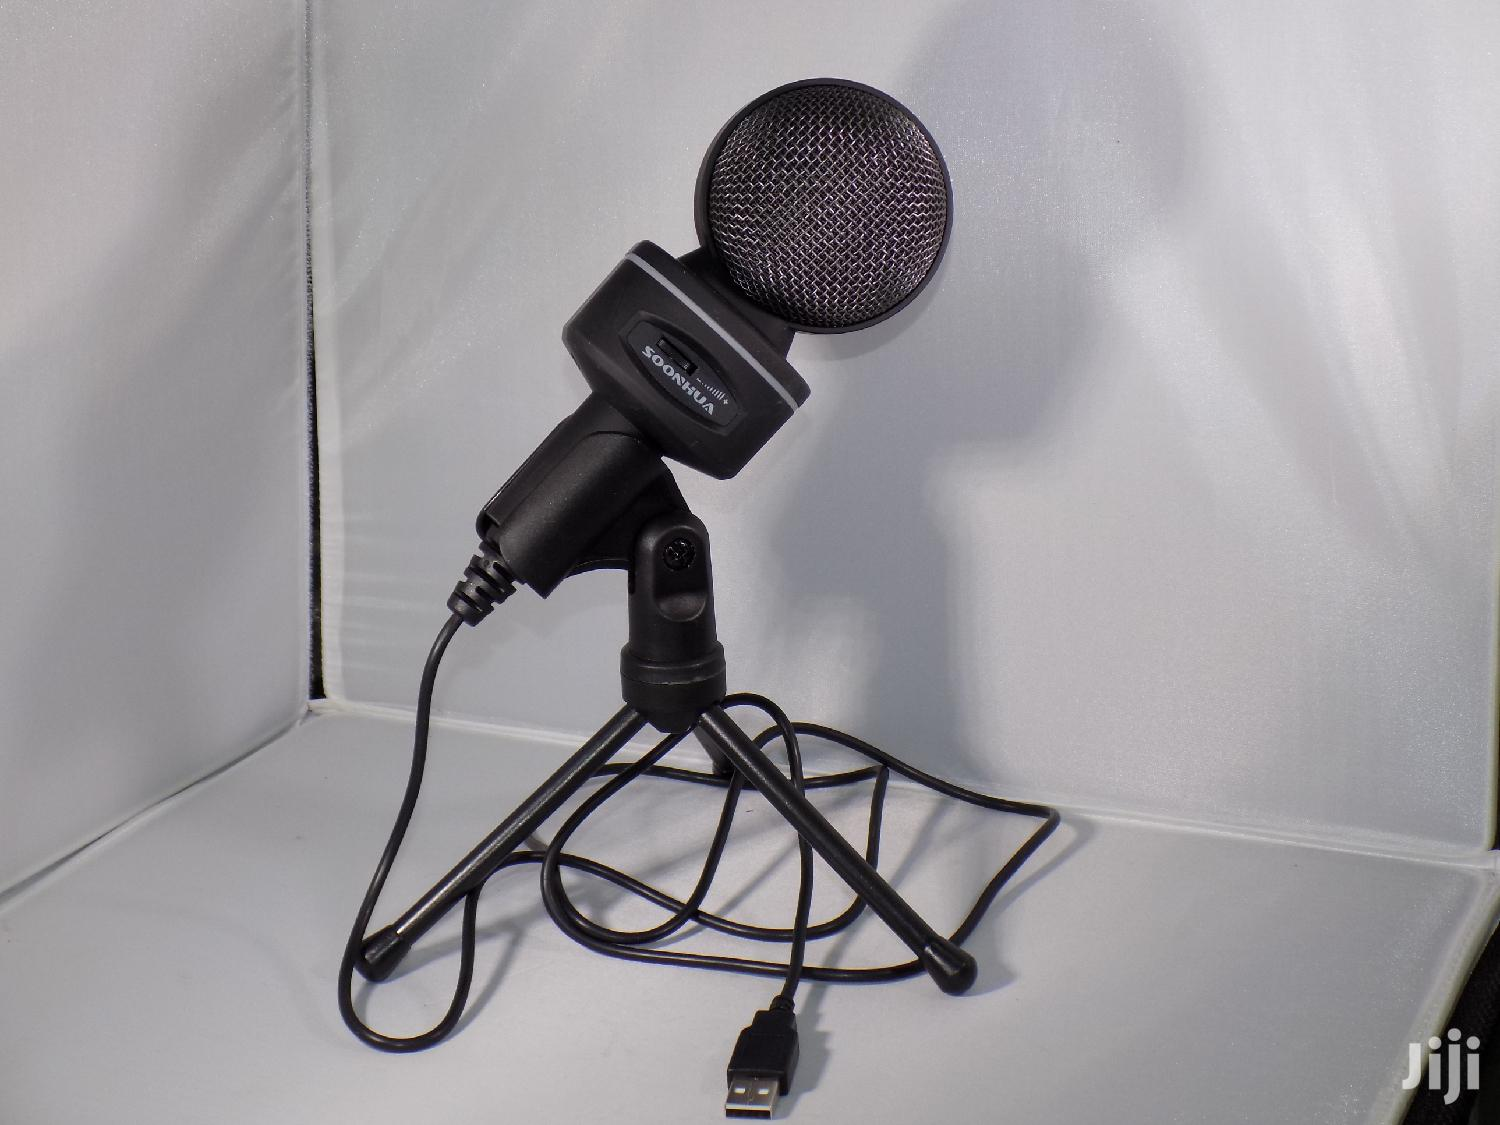 Laptop Podcast Skype Youtube Table Mic Usb In Nairobi Central Audio Music Equipment Hechs Smart Gadgets Jiji Co Ke For Sale In Nairobi Central Buy Audio Music Equipment From